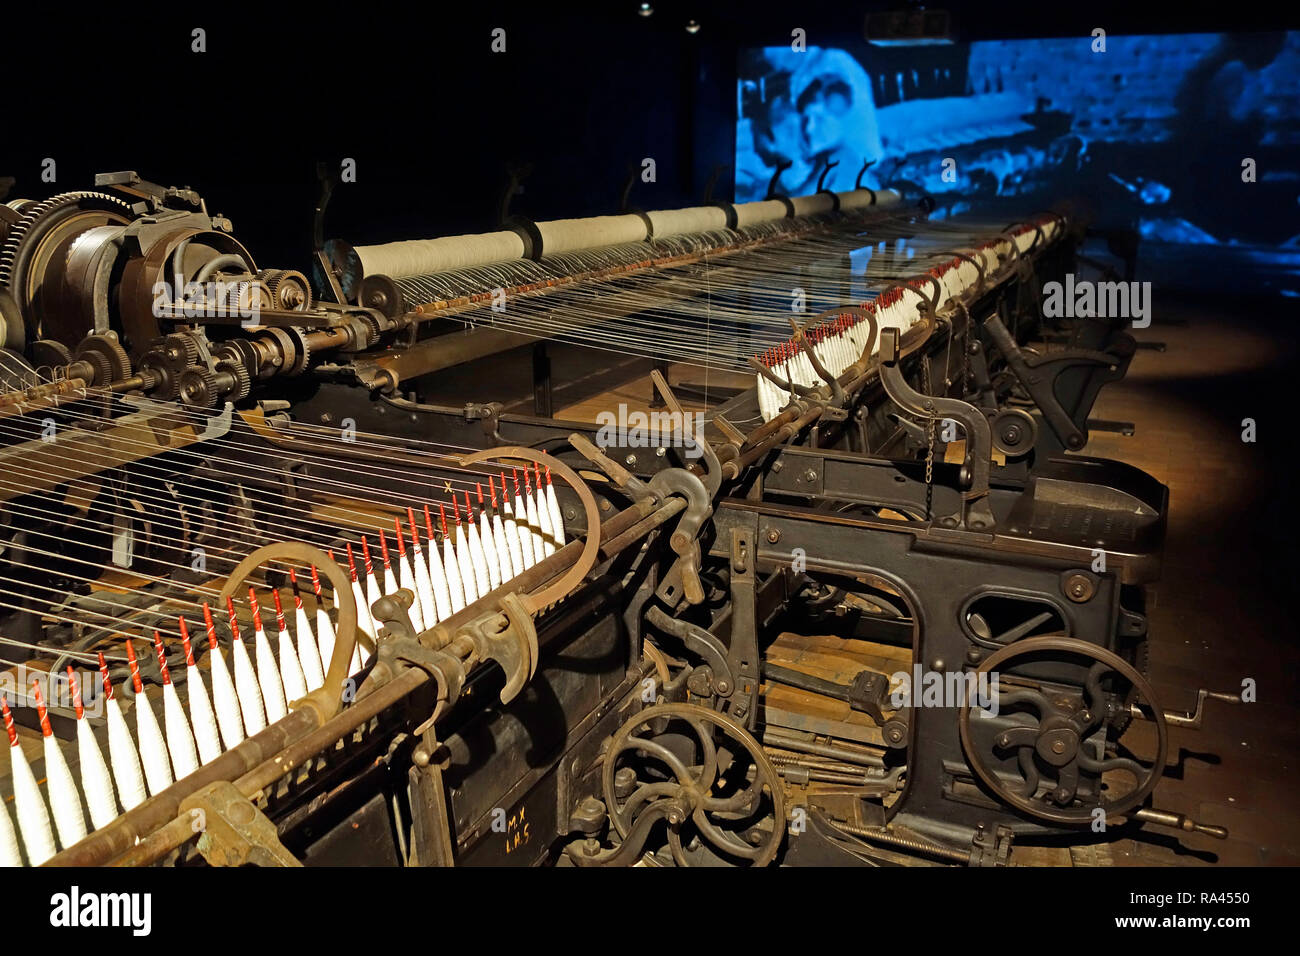 24 meter long selfactor, self-acting spinning mule at MIAT / Industriemuseum, industrial archaeology museum, Ghent, Belgium Stock Photo